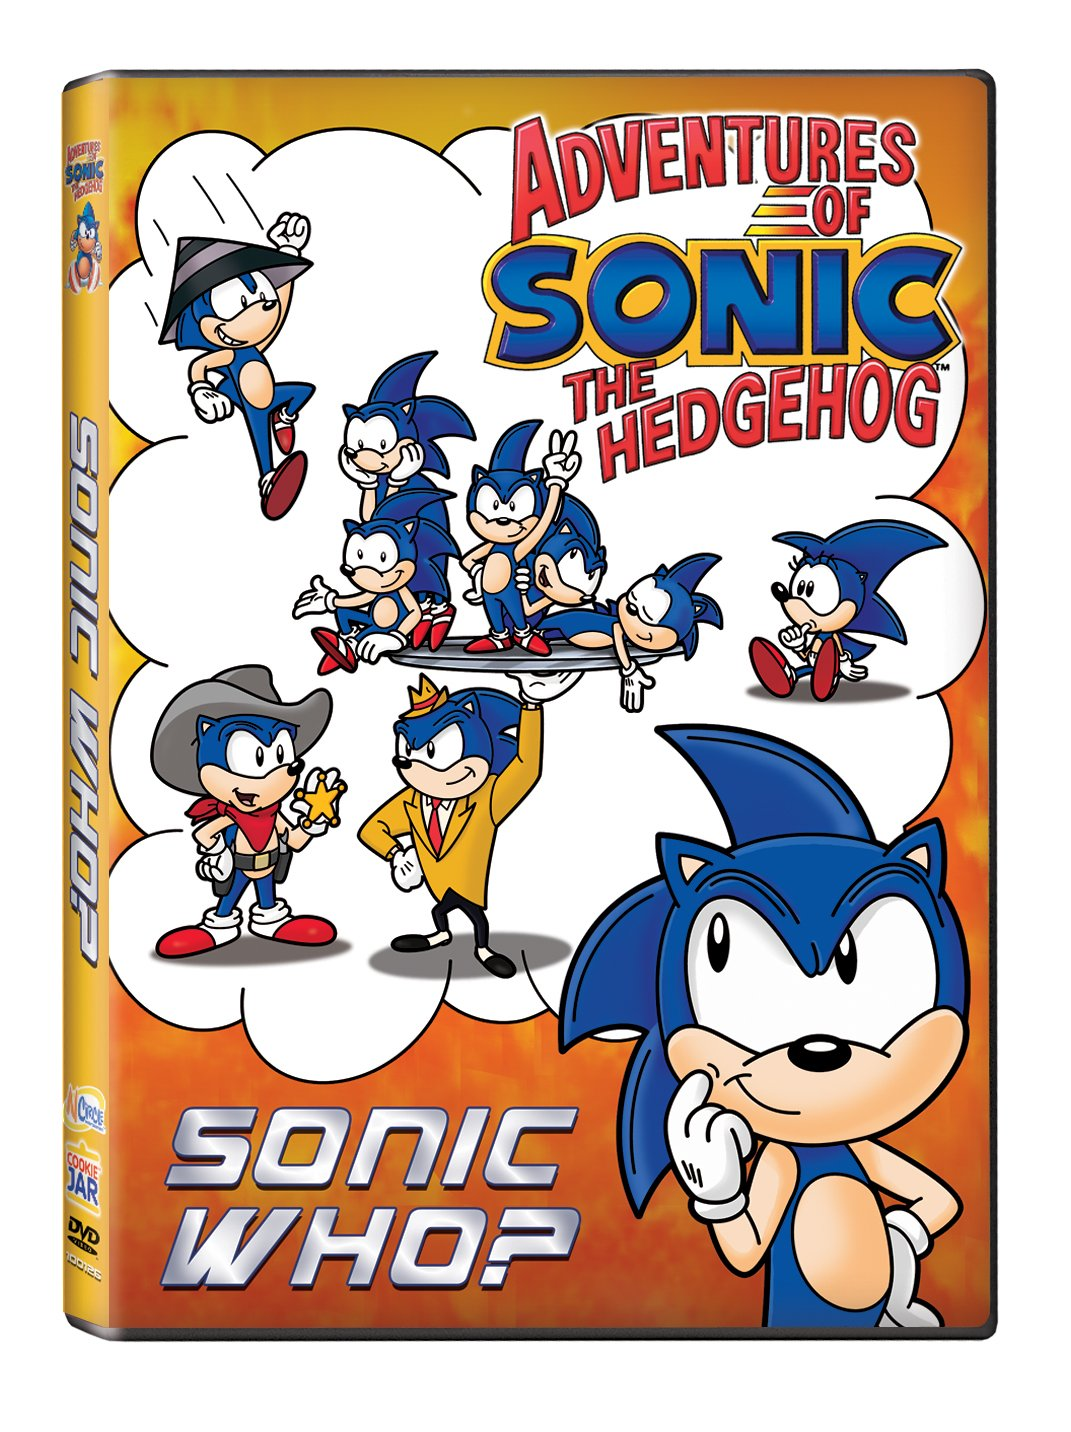 Amazon Com Adventures Of Sonic The Hedgehog Sonic Who Artist Not Provided Sonic Movies Tv